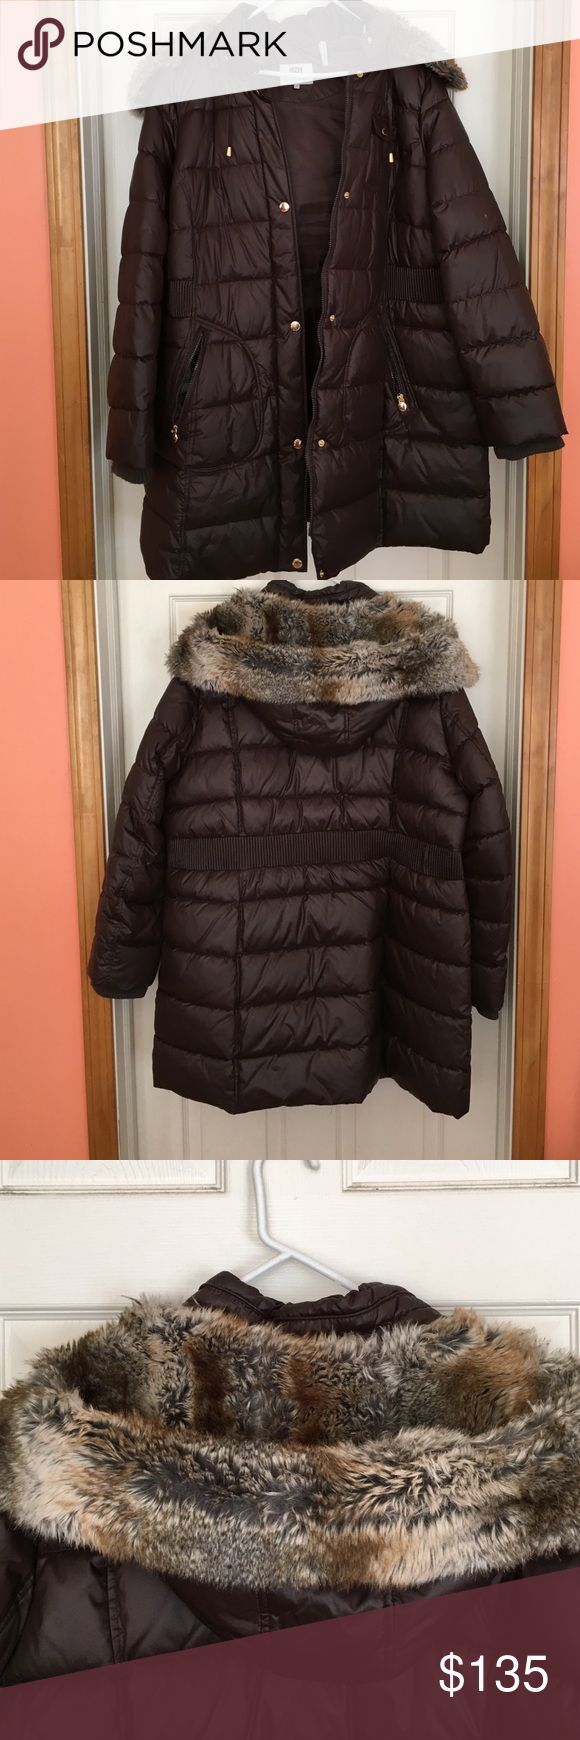 Ladies Coats Brown Knee Length Coat, NWOT Purchased last year @ Burlington Coat Factory now it's to big for me I Paid $175 for it so please no ridiculous low offers I will not comment or accept, Thank You !!!!! Laundry by Design Jackets & Coats Puffers